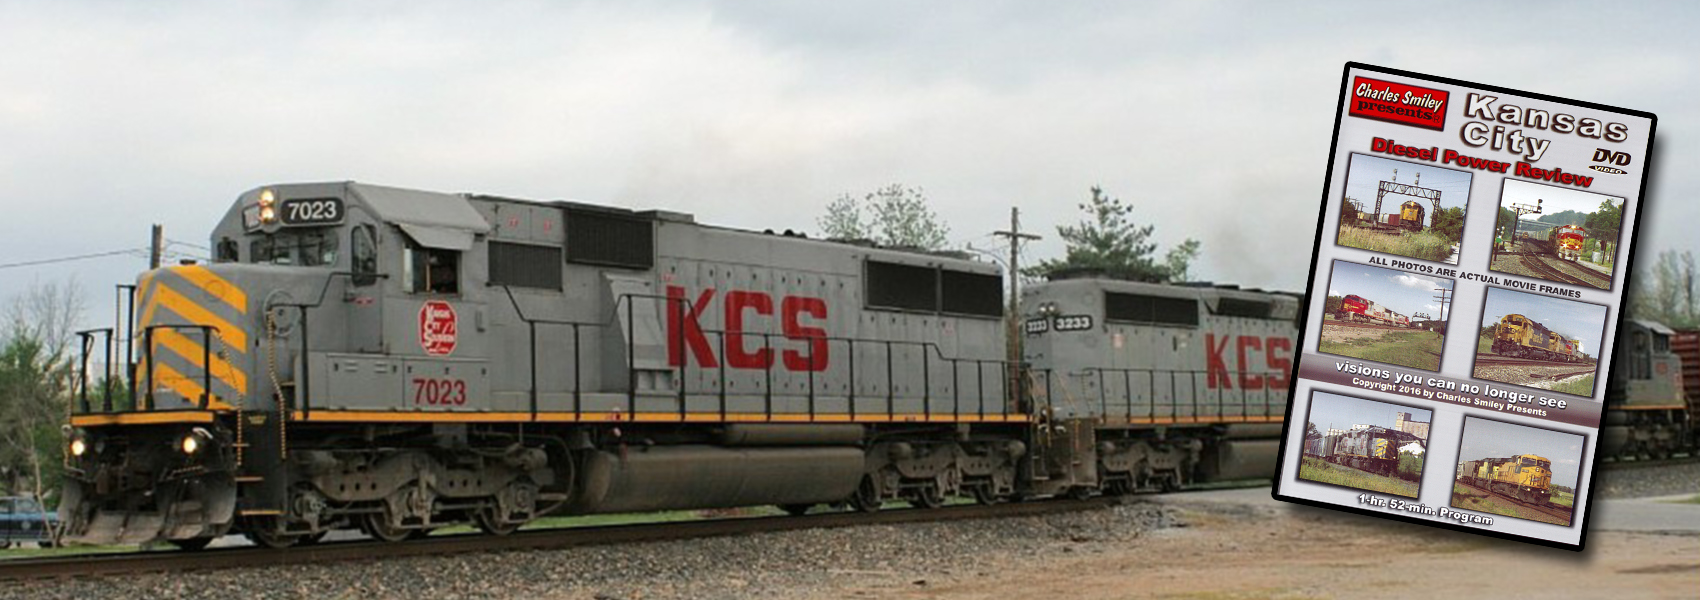 Train Pictures - Kansas City Diesel Power Review